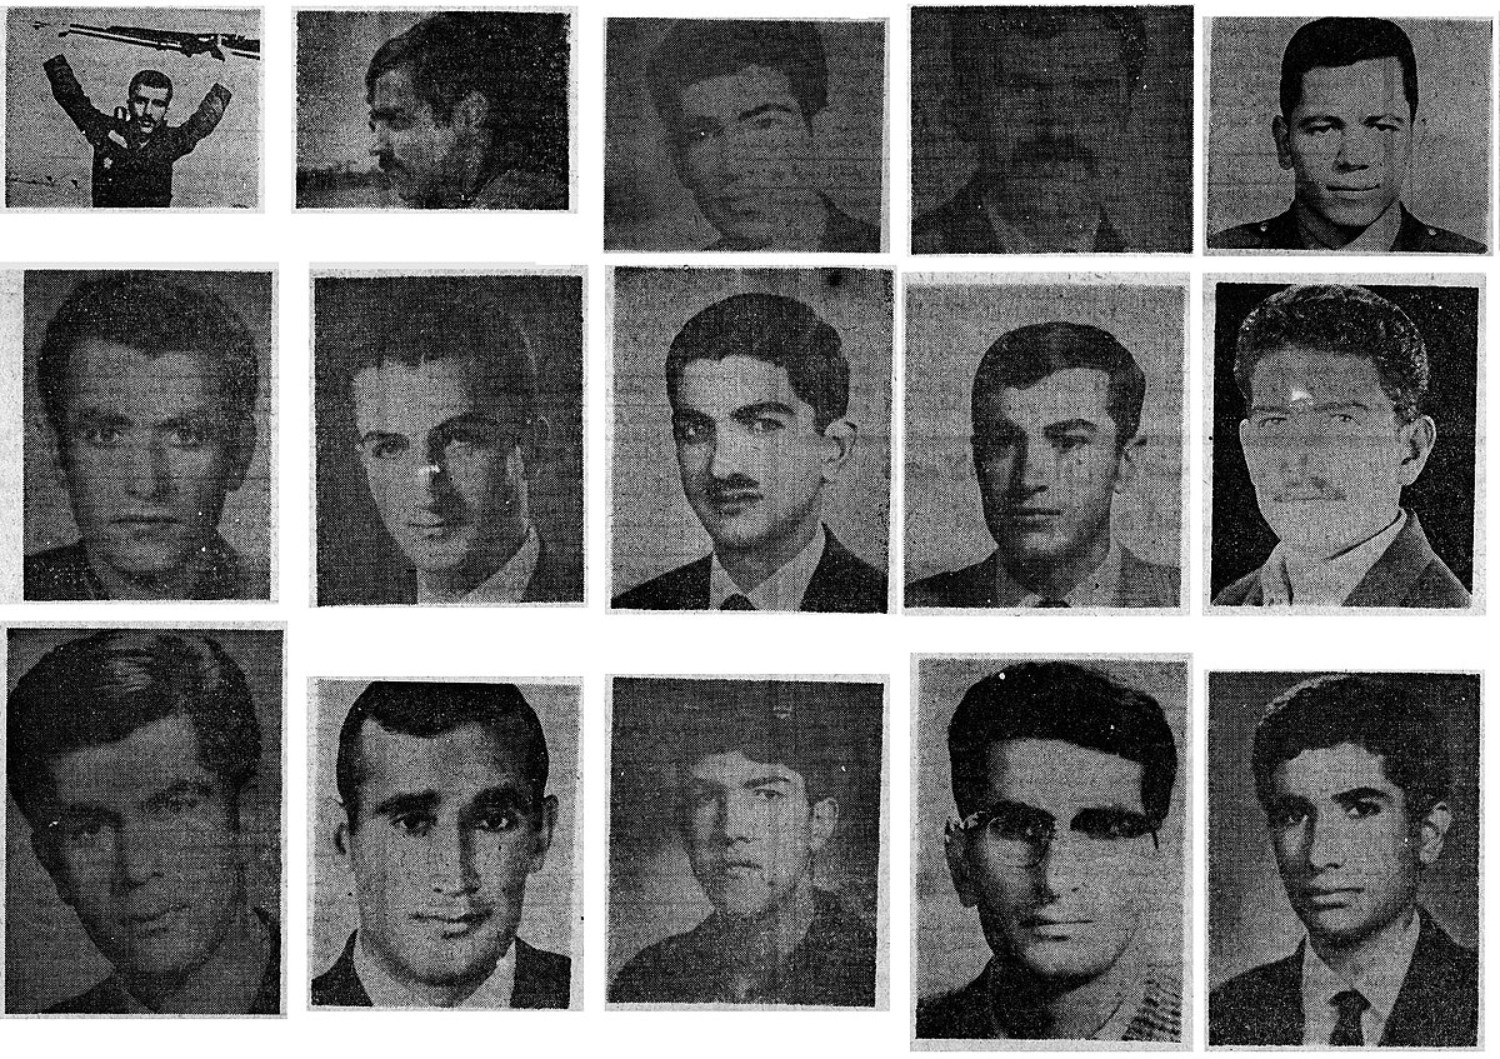 Mugshots of the young men accused of involvement with the Siahkal incident were widely published in Iranian newspapers (Wikicommons)